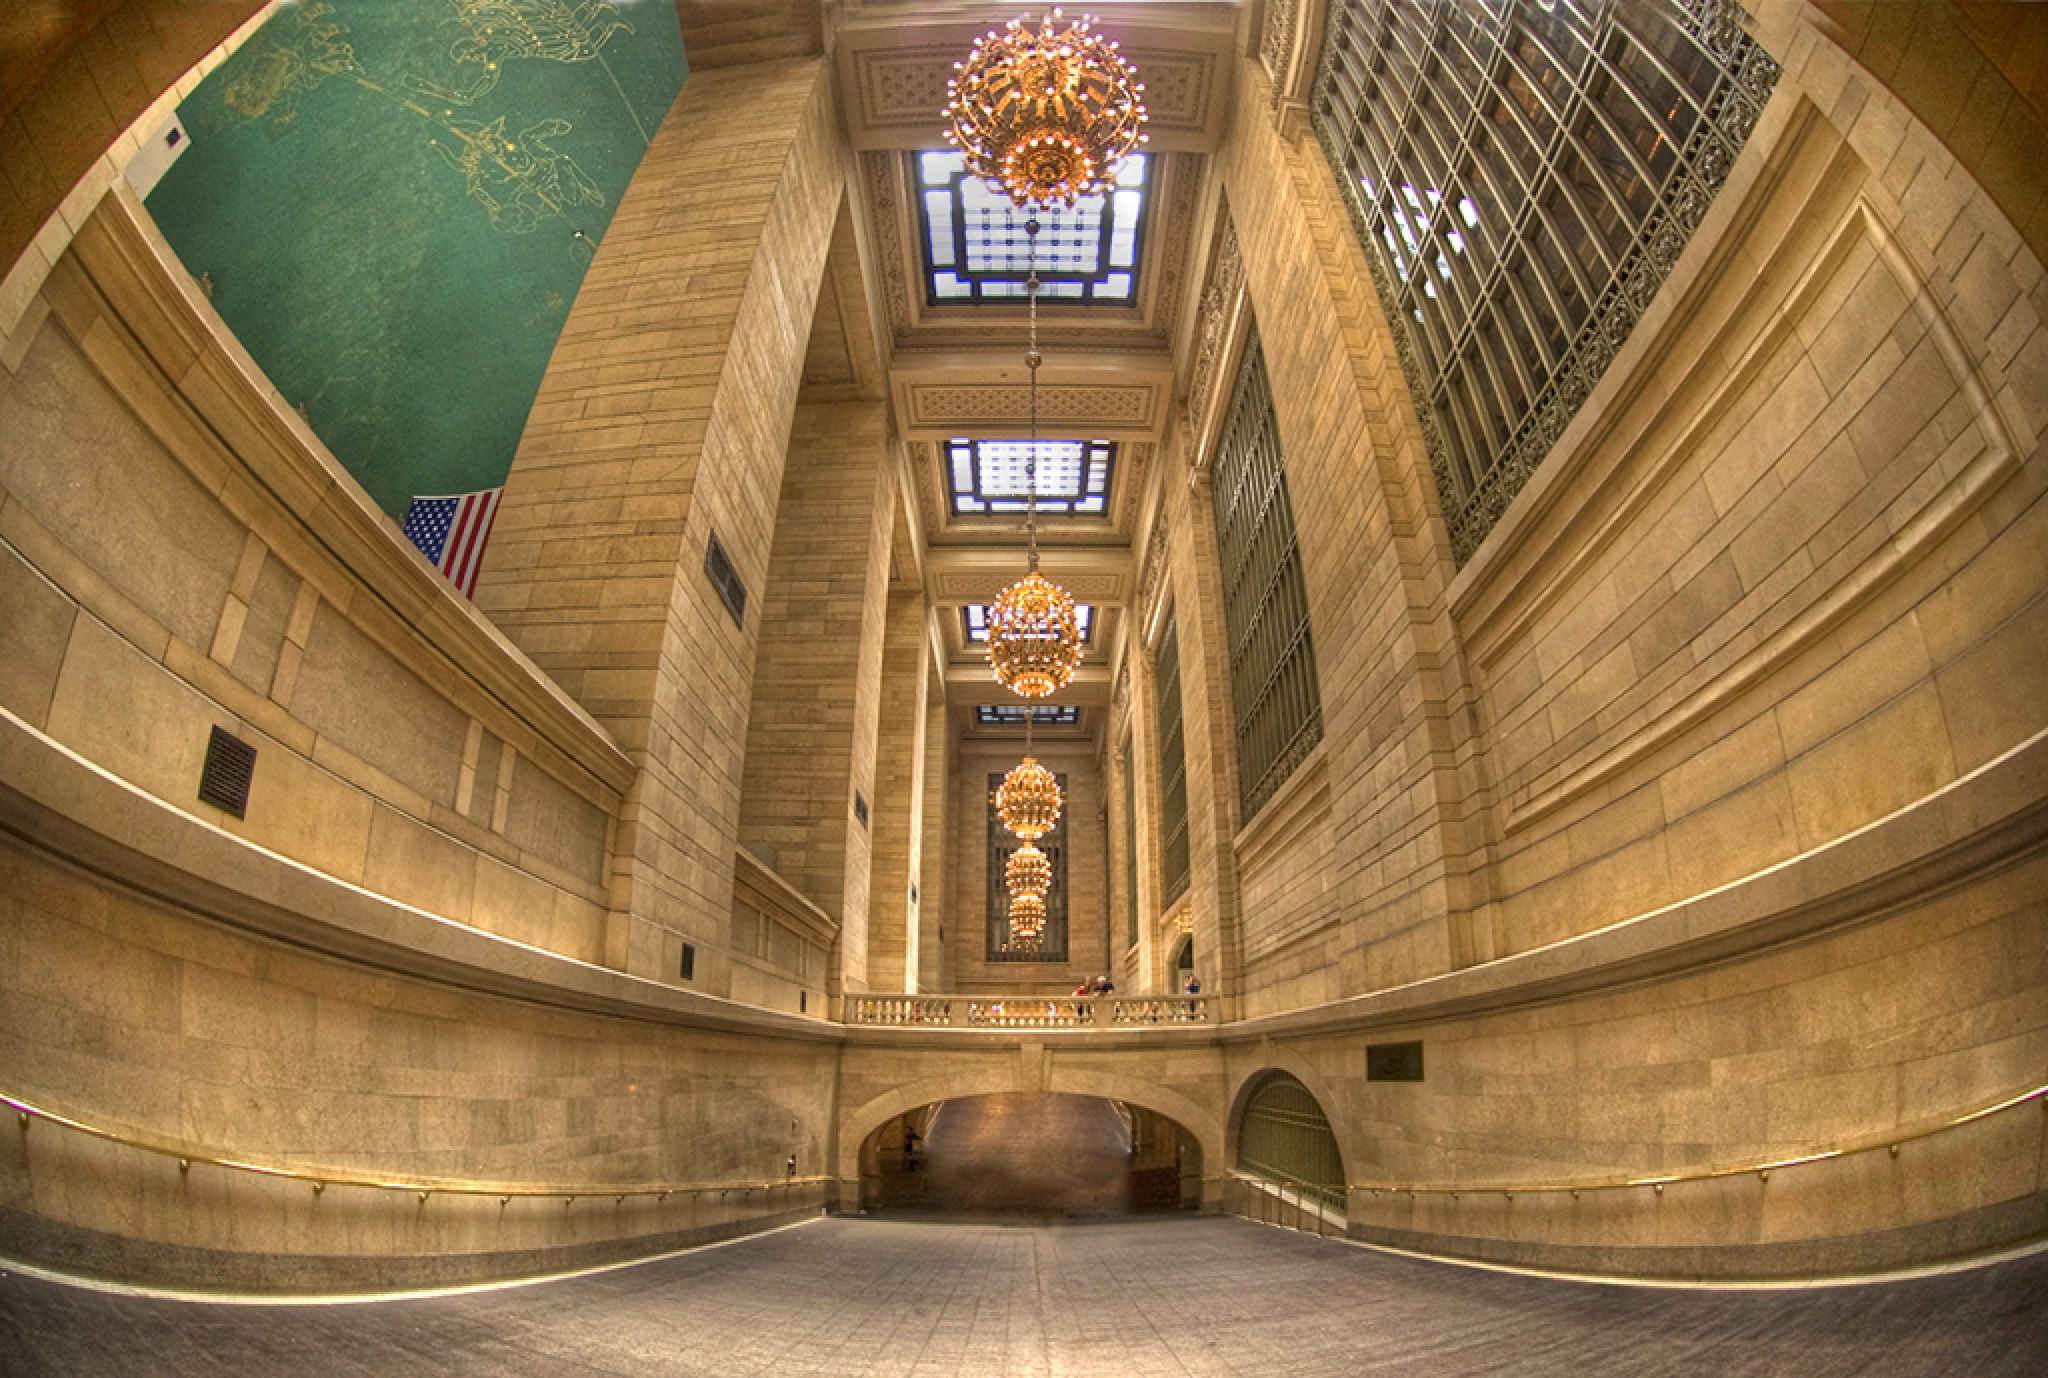 Grand Central Terminus by Fotoguy